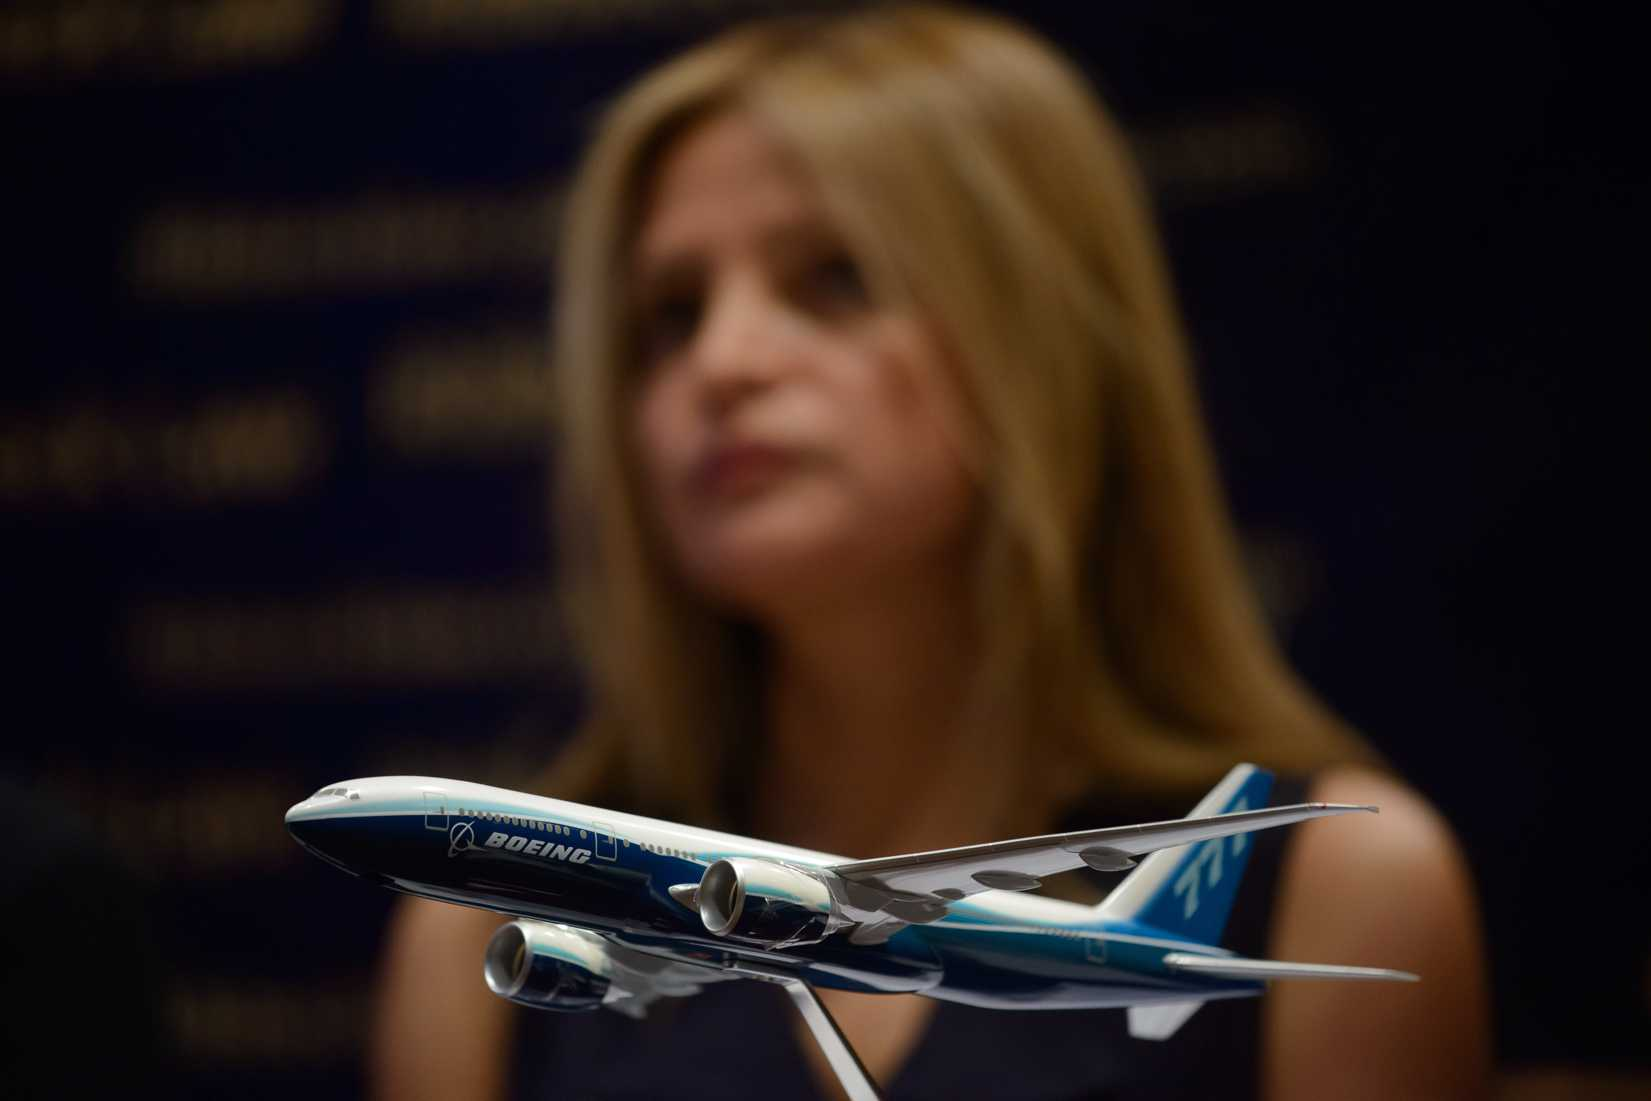 A model of a Boeing 777 aircraft is displayed as Monica Kelly of U.S. law firm Ribbeck Law attends a media briefing organized by the company at a hotel in Kuala Lumpur on March 26, 2014